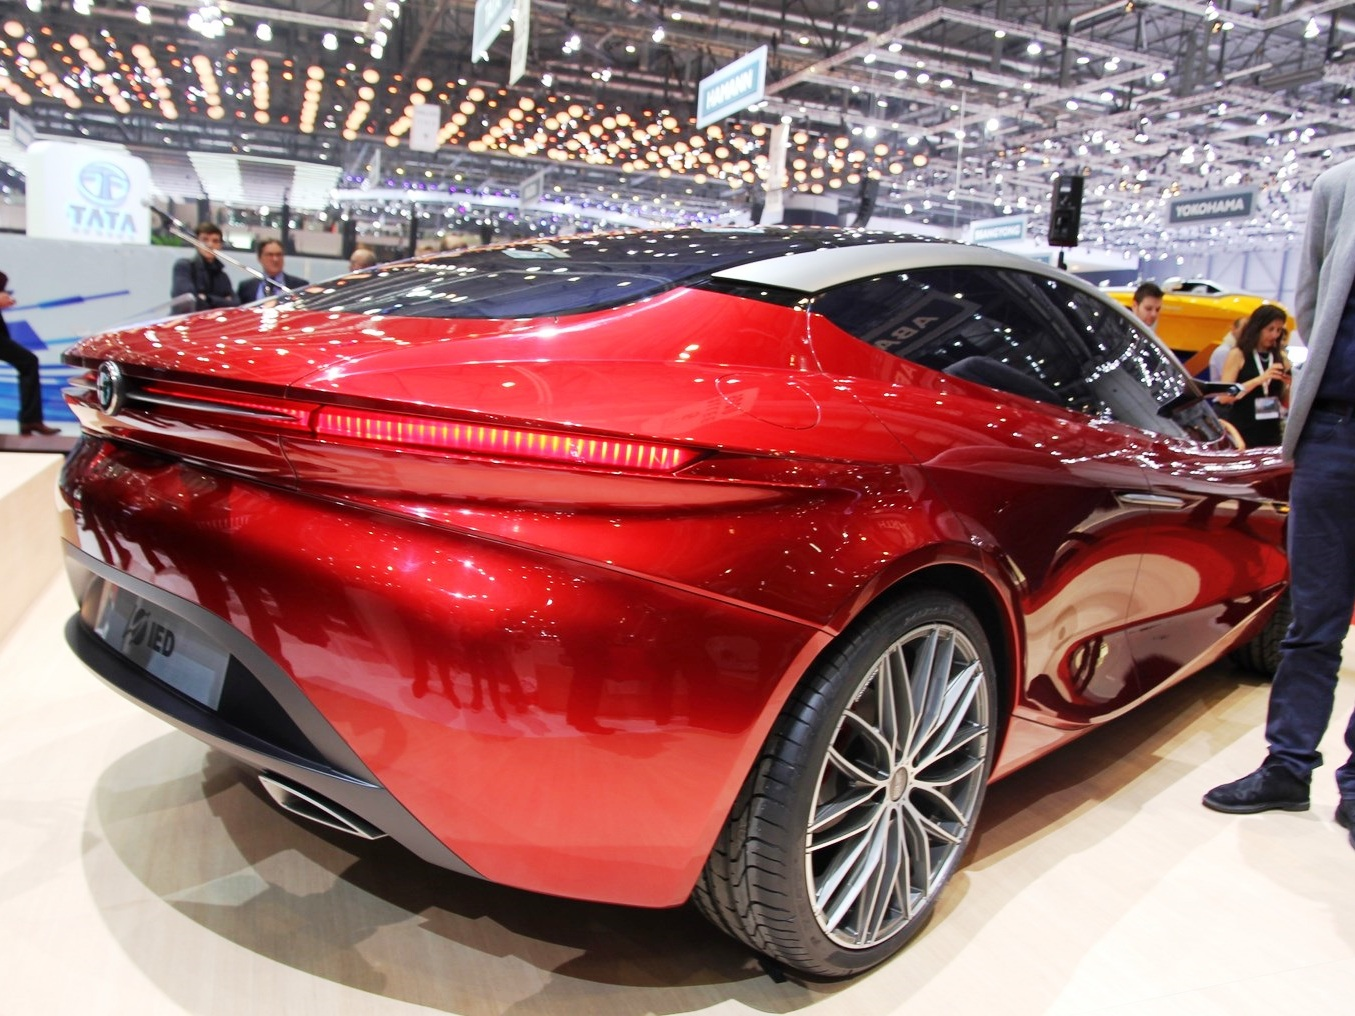 2013 Alfa Romeo Gloria Concept Unveiled (Photo 5 of 6)